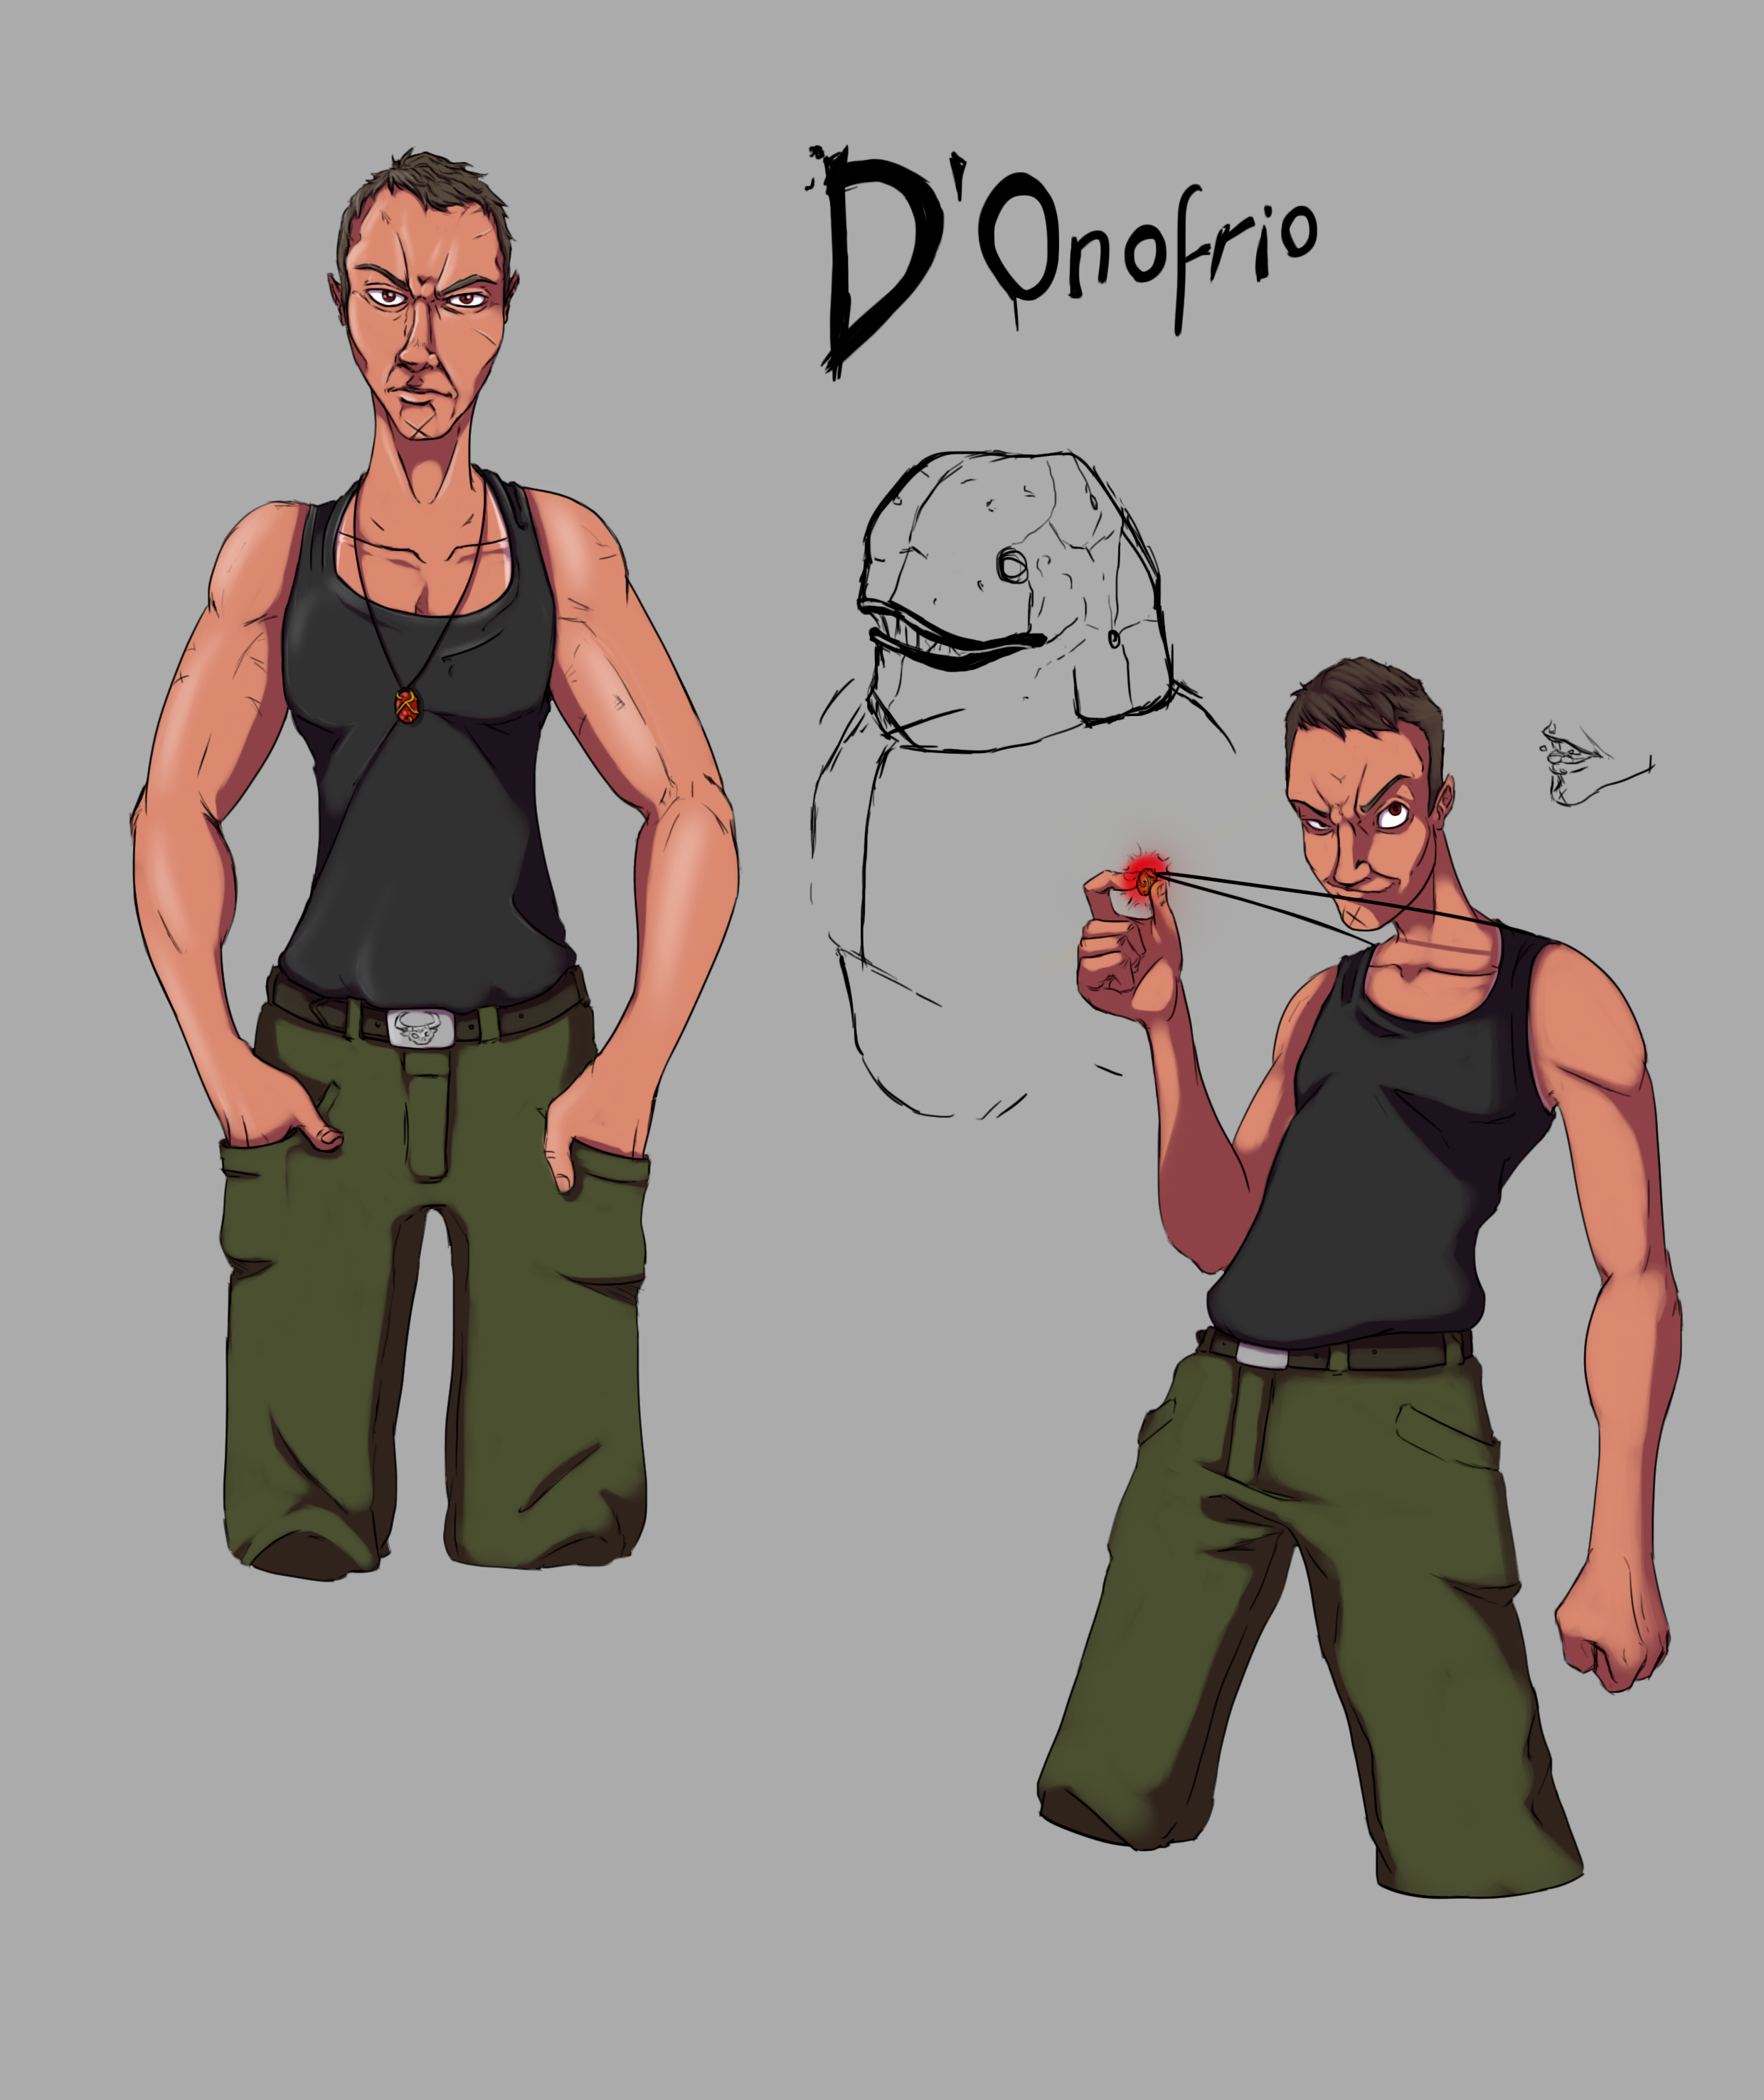 D'onofrio.png